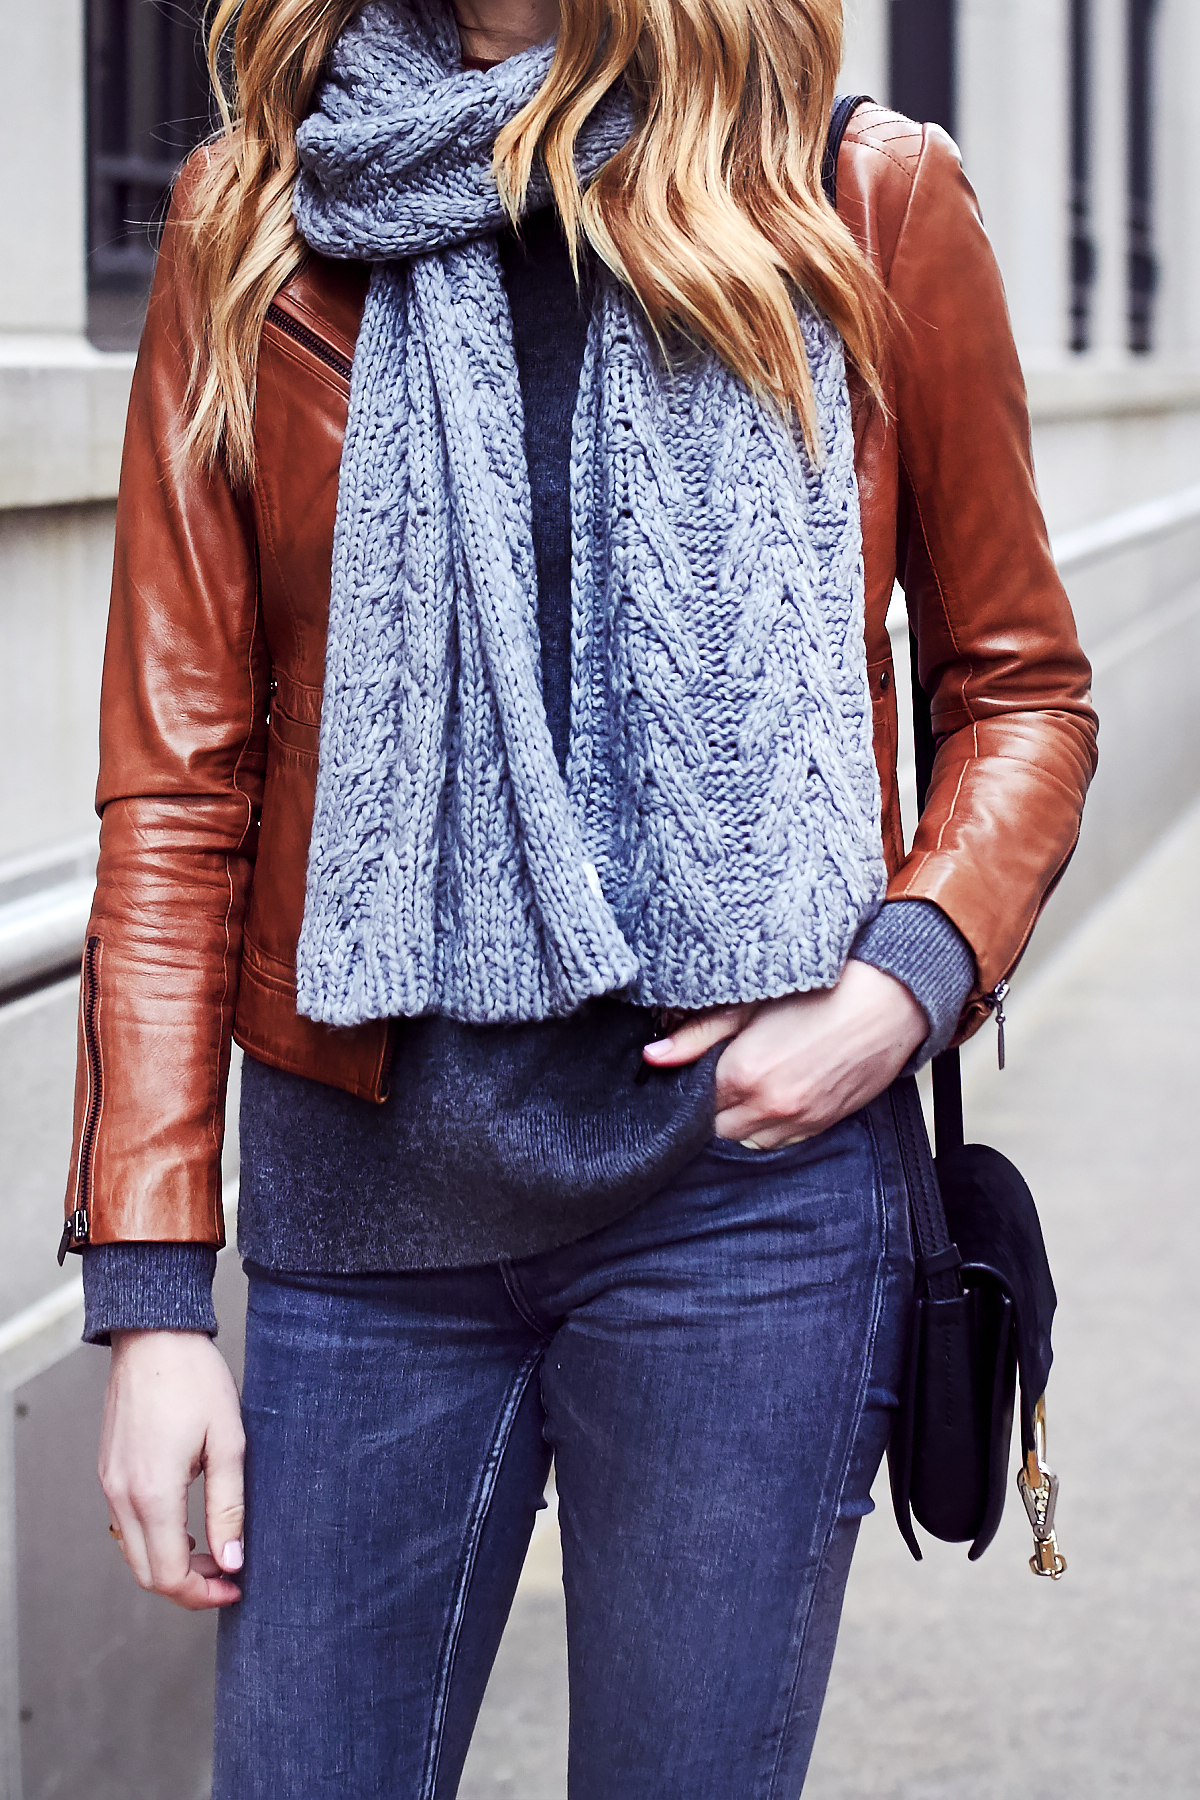 Fall Outfit, Winter Outfit, Grey Knit Scarf, Tan Faux Leather Jacket, Chloe Faye Handbag